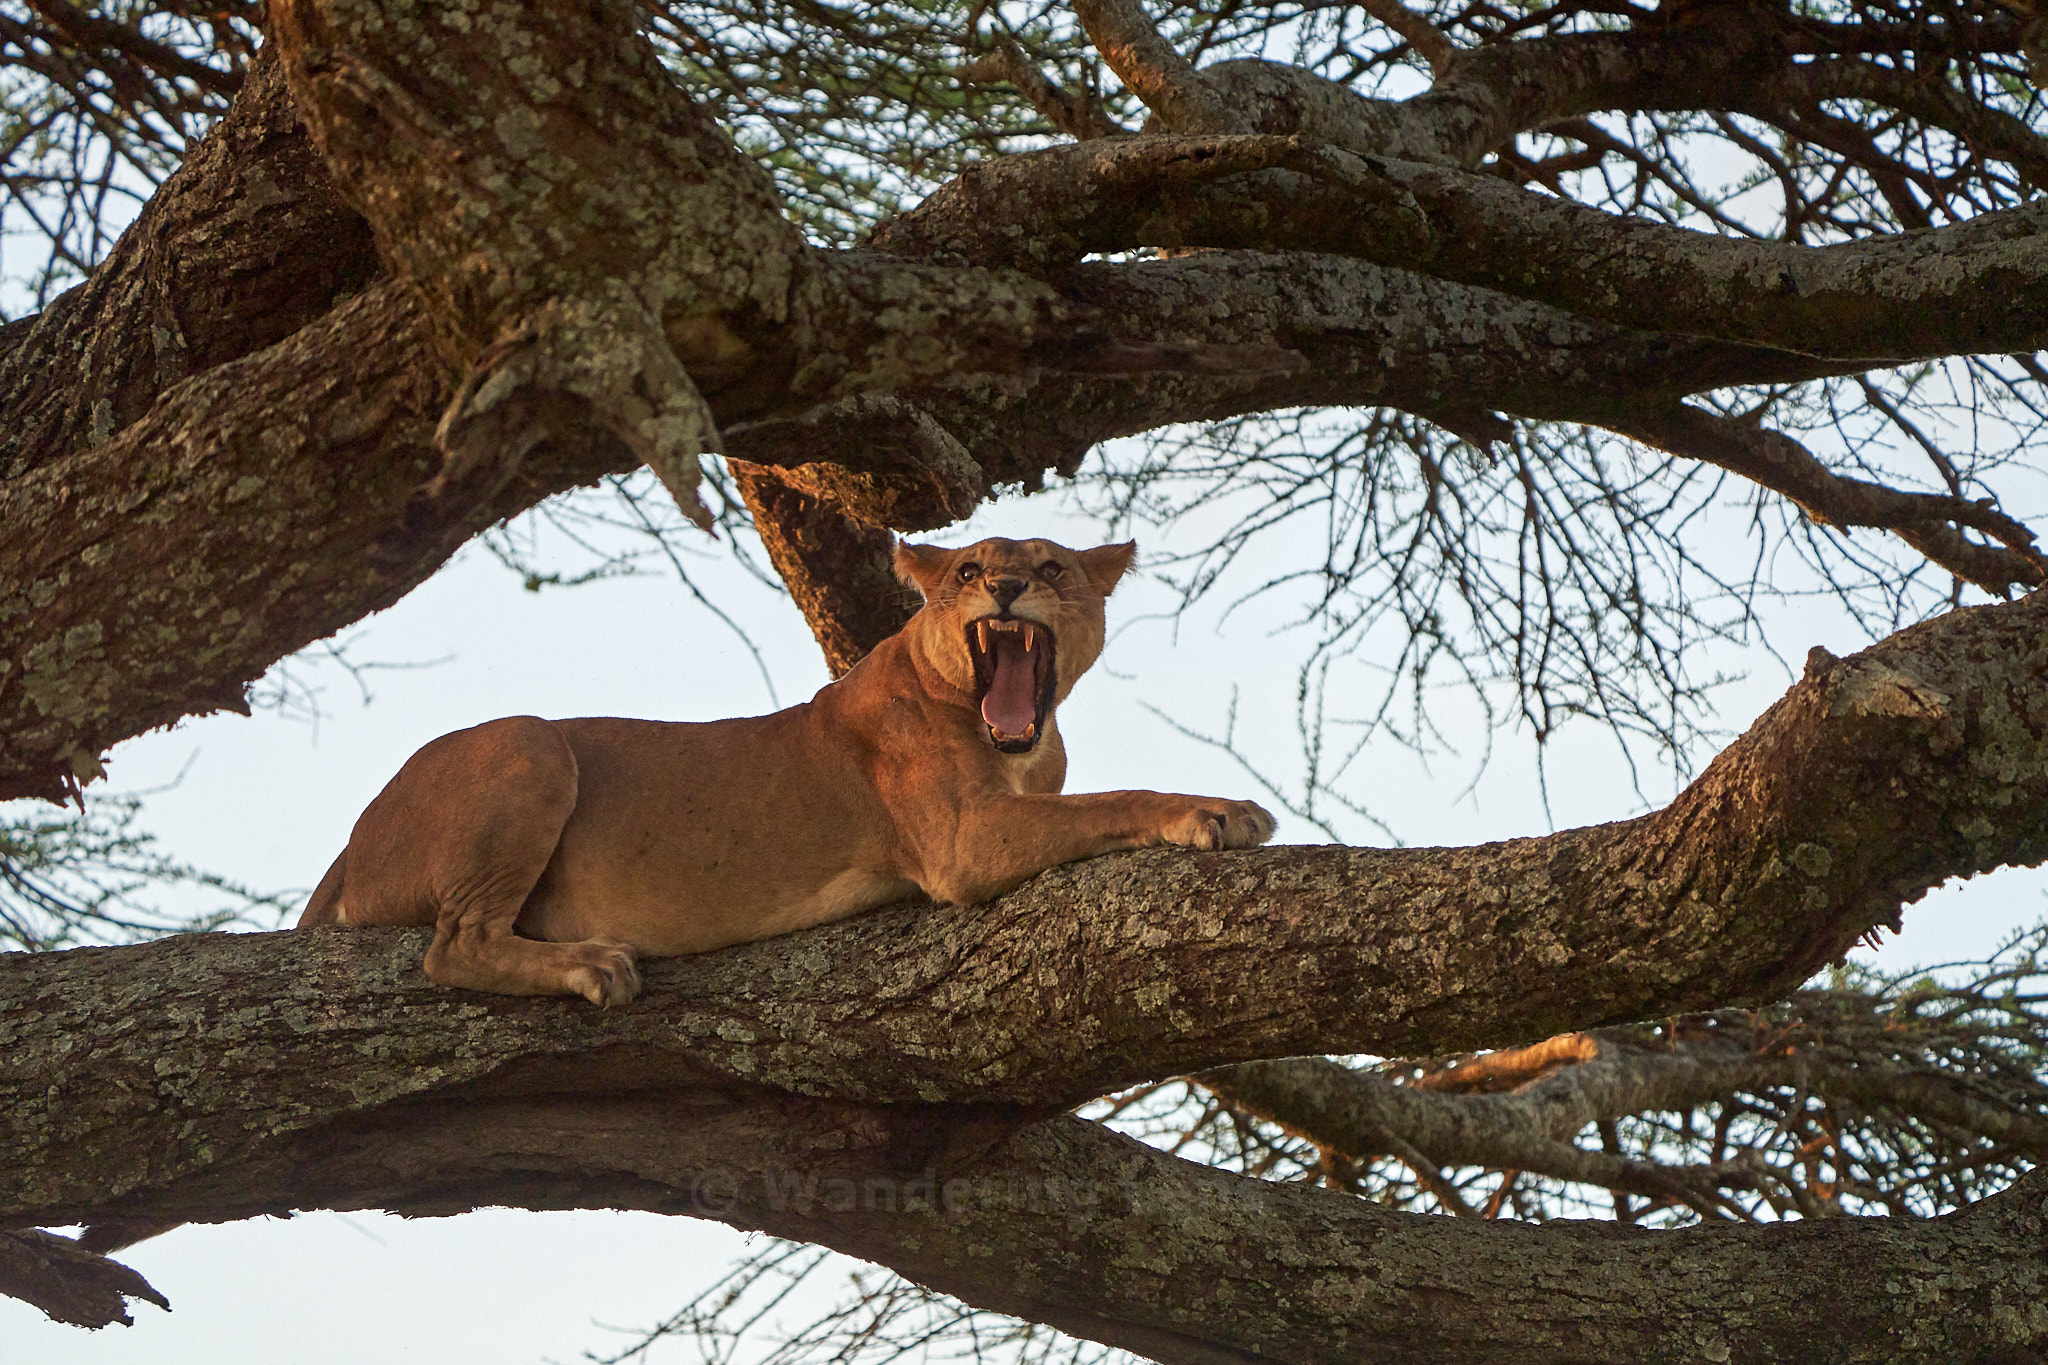 A female lion resting in a tree